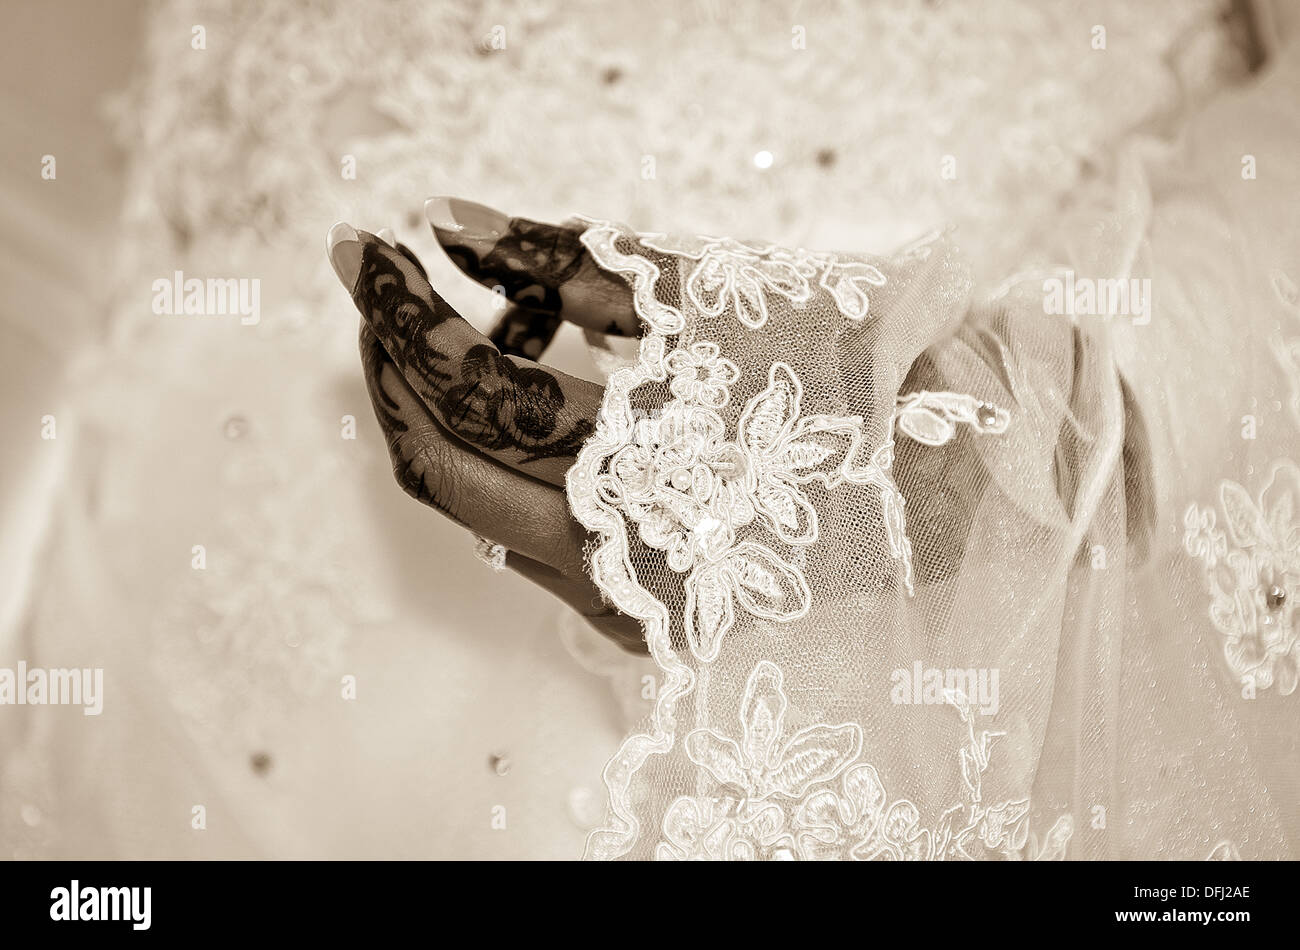 hand of a Muslim bride prepared for the ceremony - Stock Image